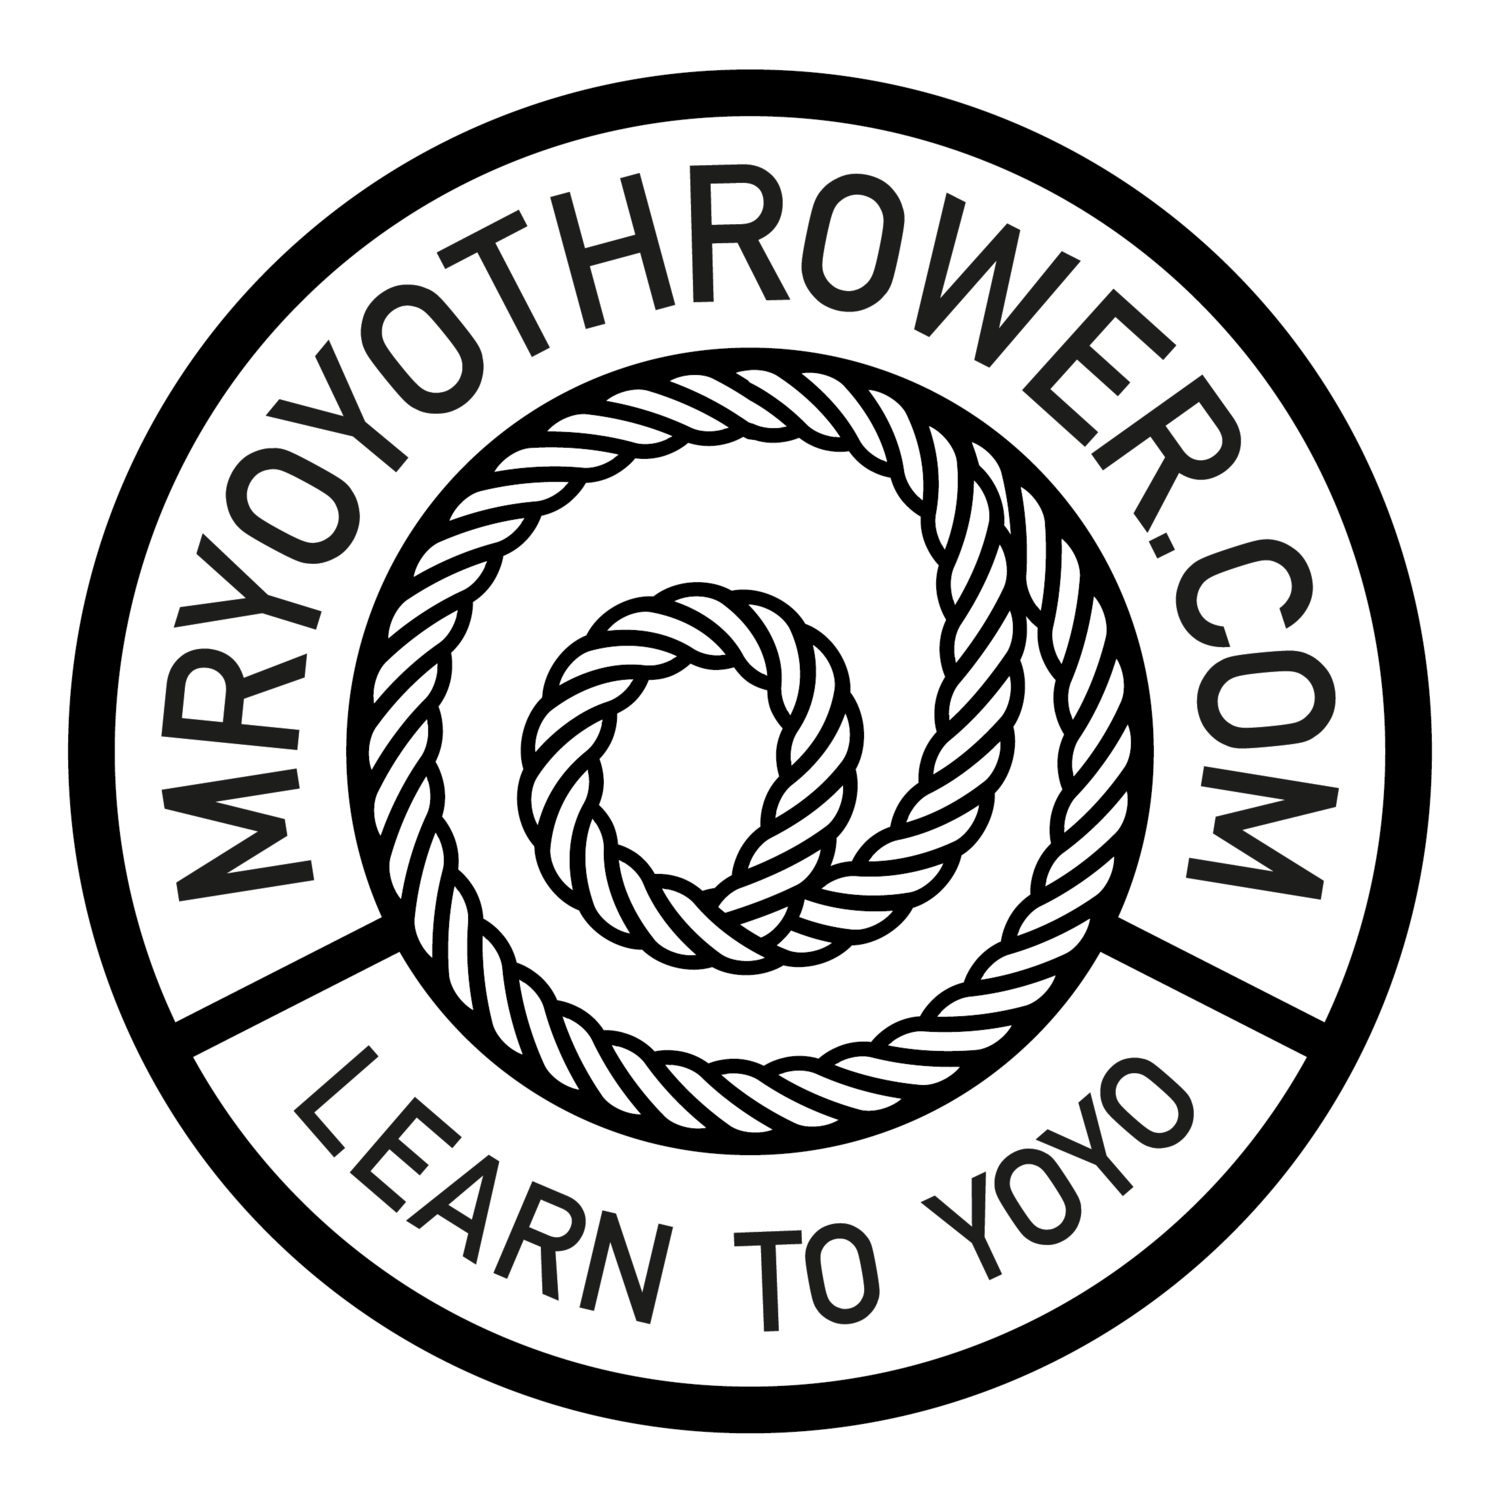 Mr. Yoyothrower